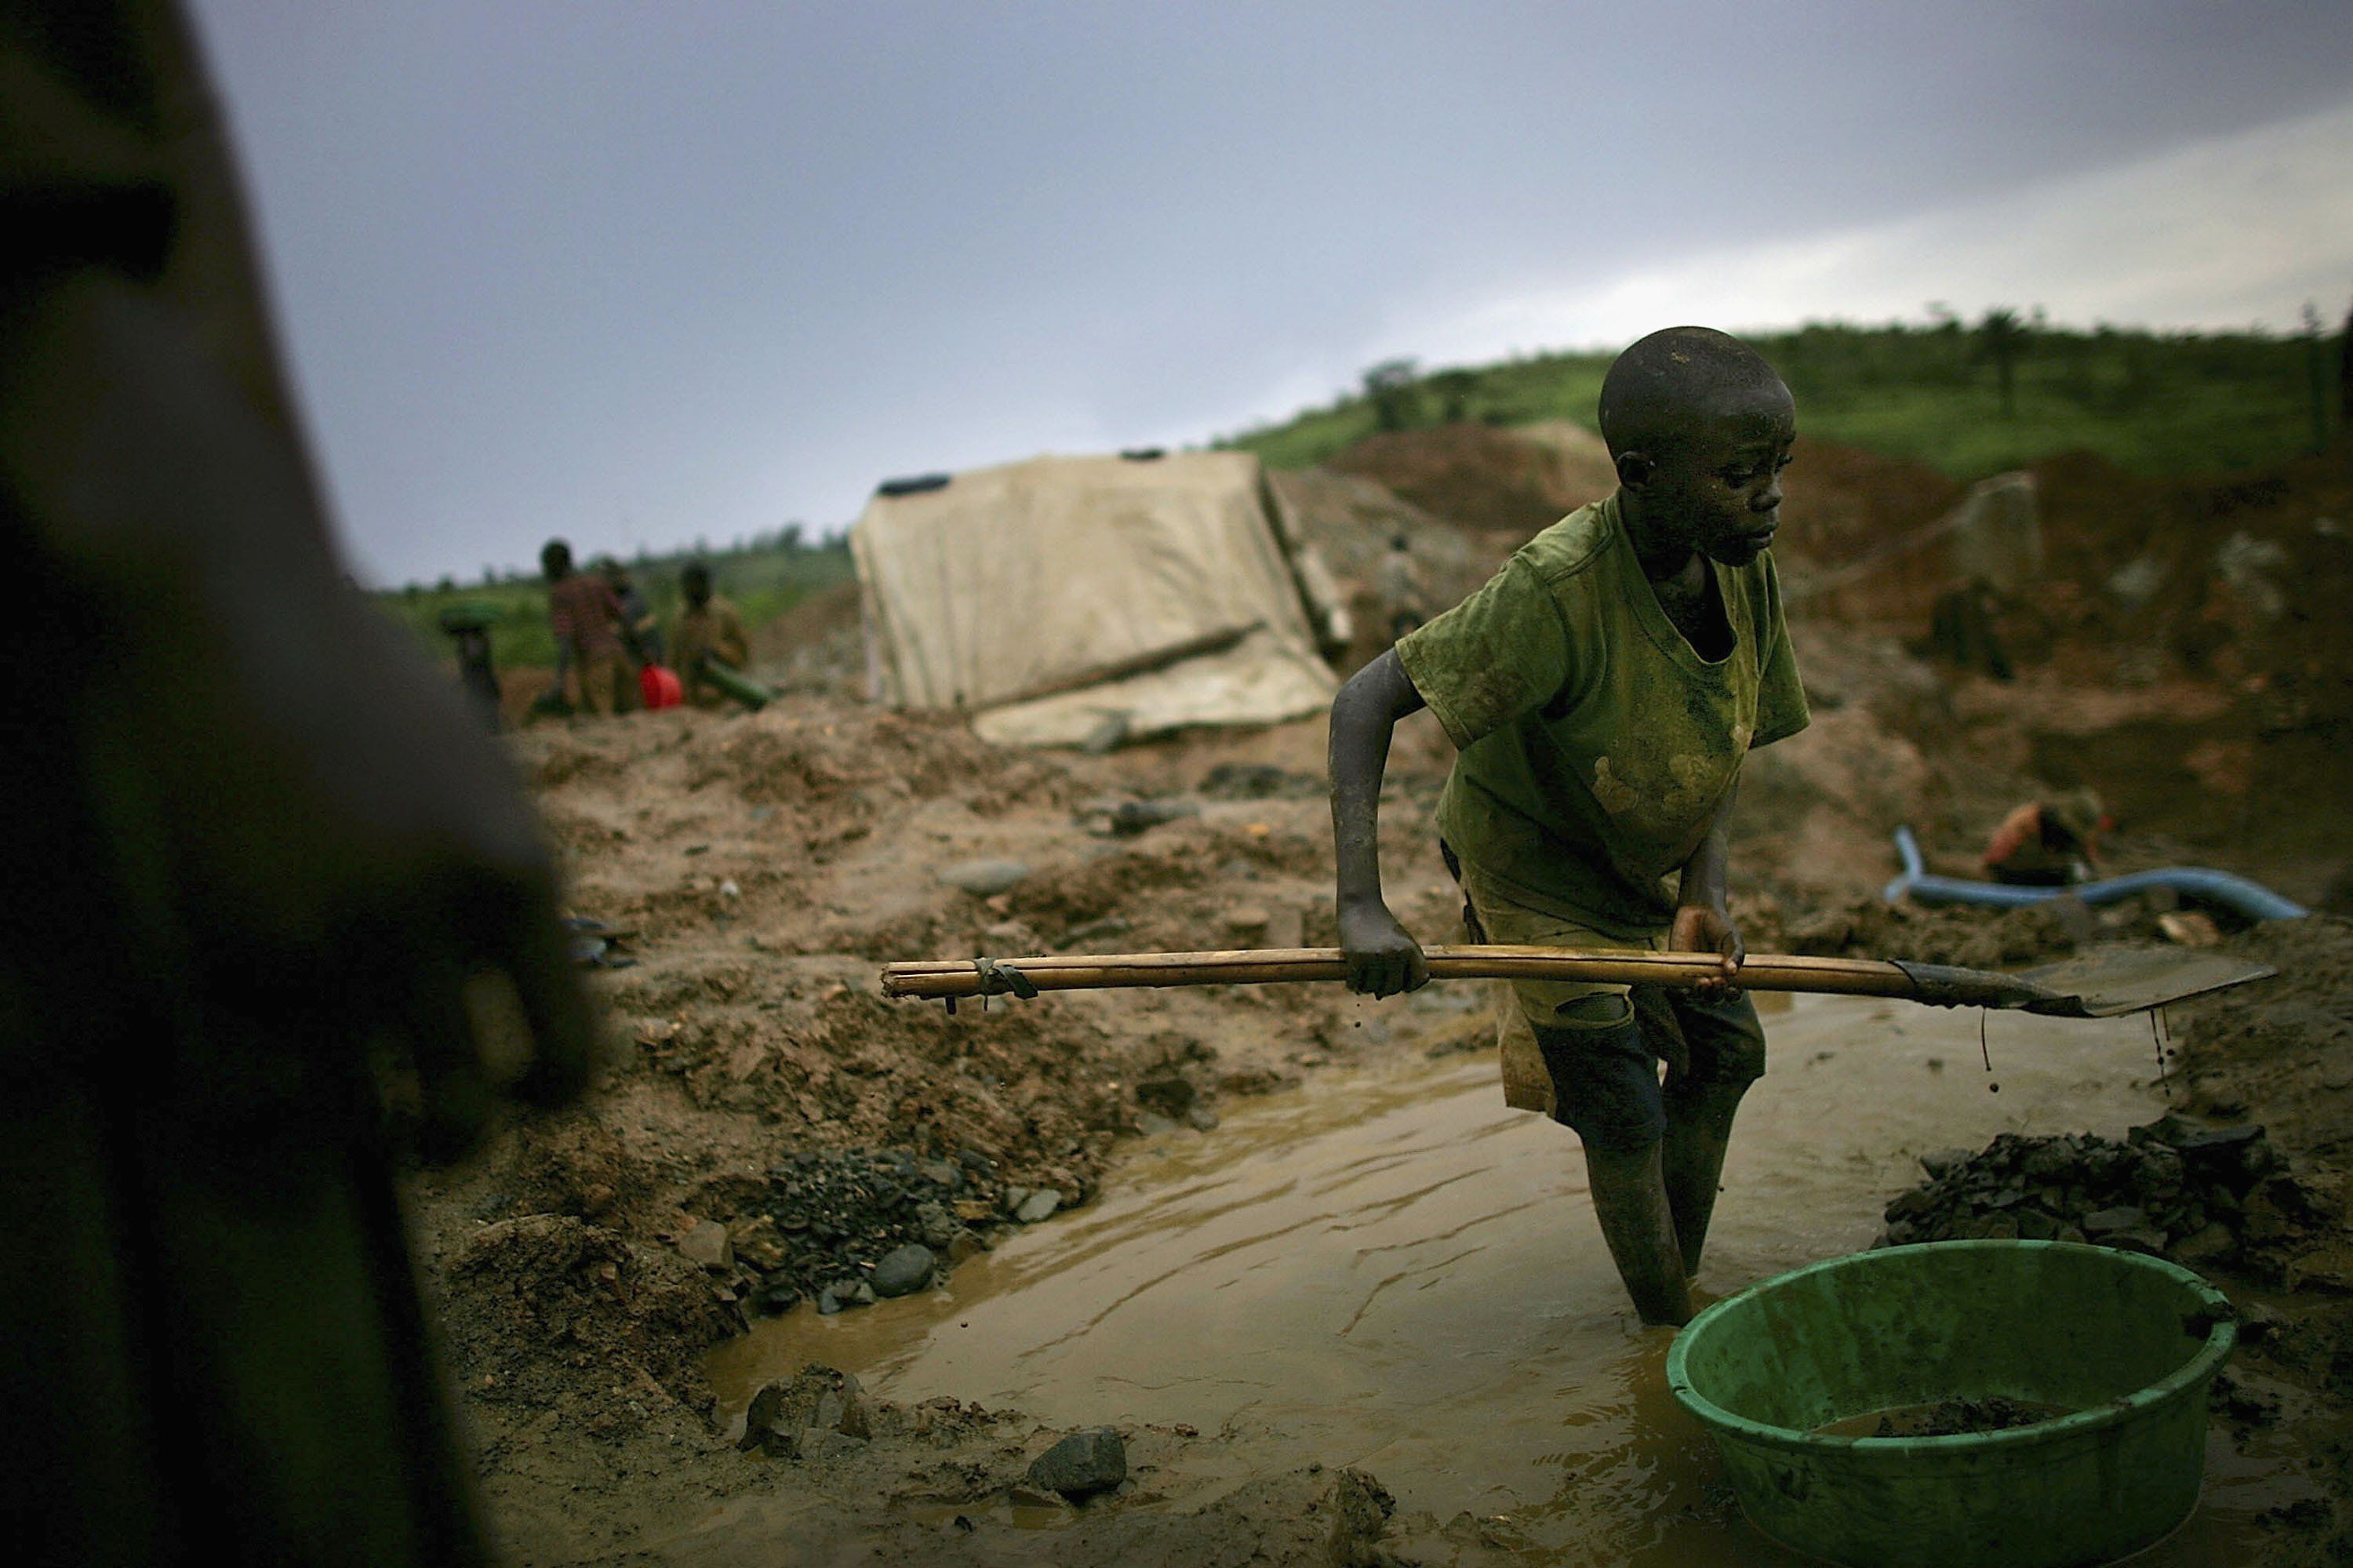 MONGBWALU, CONGO - MARCH 27: A boy shovels dirt into a bucket which will be sifted through while looking for gold March 27, 2006 in Mongbwalu, Congo. Thousands of Congolese scrape together meagre livings from mining. Gold and other mineral deposits, which are numerous in the volatile north-east of the country, have become a catalyst to much of the conflict in Congo. The Democratic Republic of Congo (DRC), a country that loses an estimated 1,400 people per day due to war since 1998, is struggling to hold Presidential elections this summer. The volatile East of the country, which is situated hundreds of miles from the capital Kinshasa, has been the focal point of continued violence. Numerous militias and warlords have vied for control of the mineral rich eastern Congo for decades, creating instability and continued bloodshed.  (Photo by Spencer Platt/Getty Images)